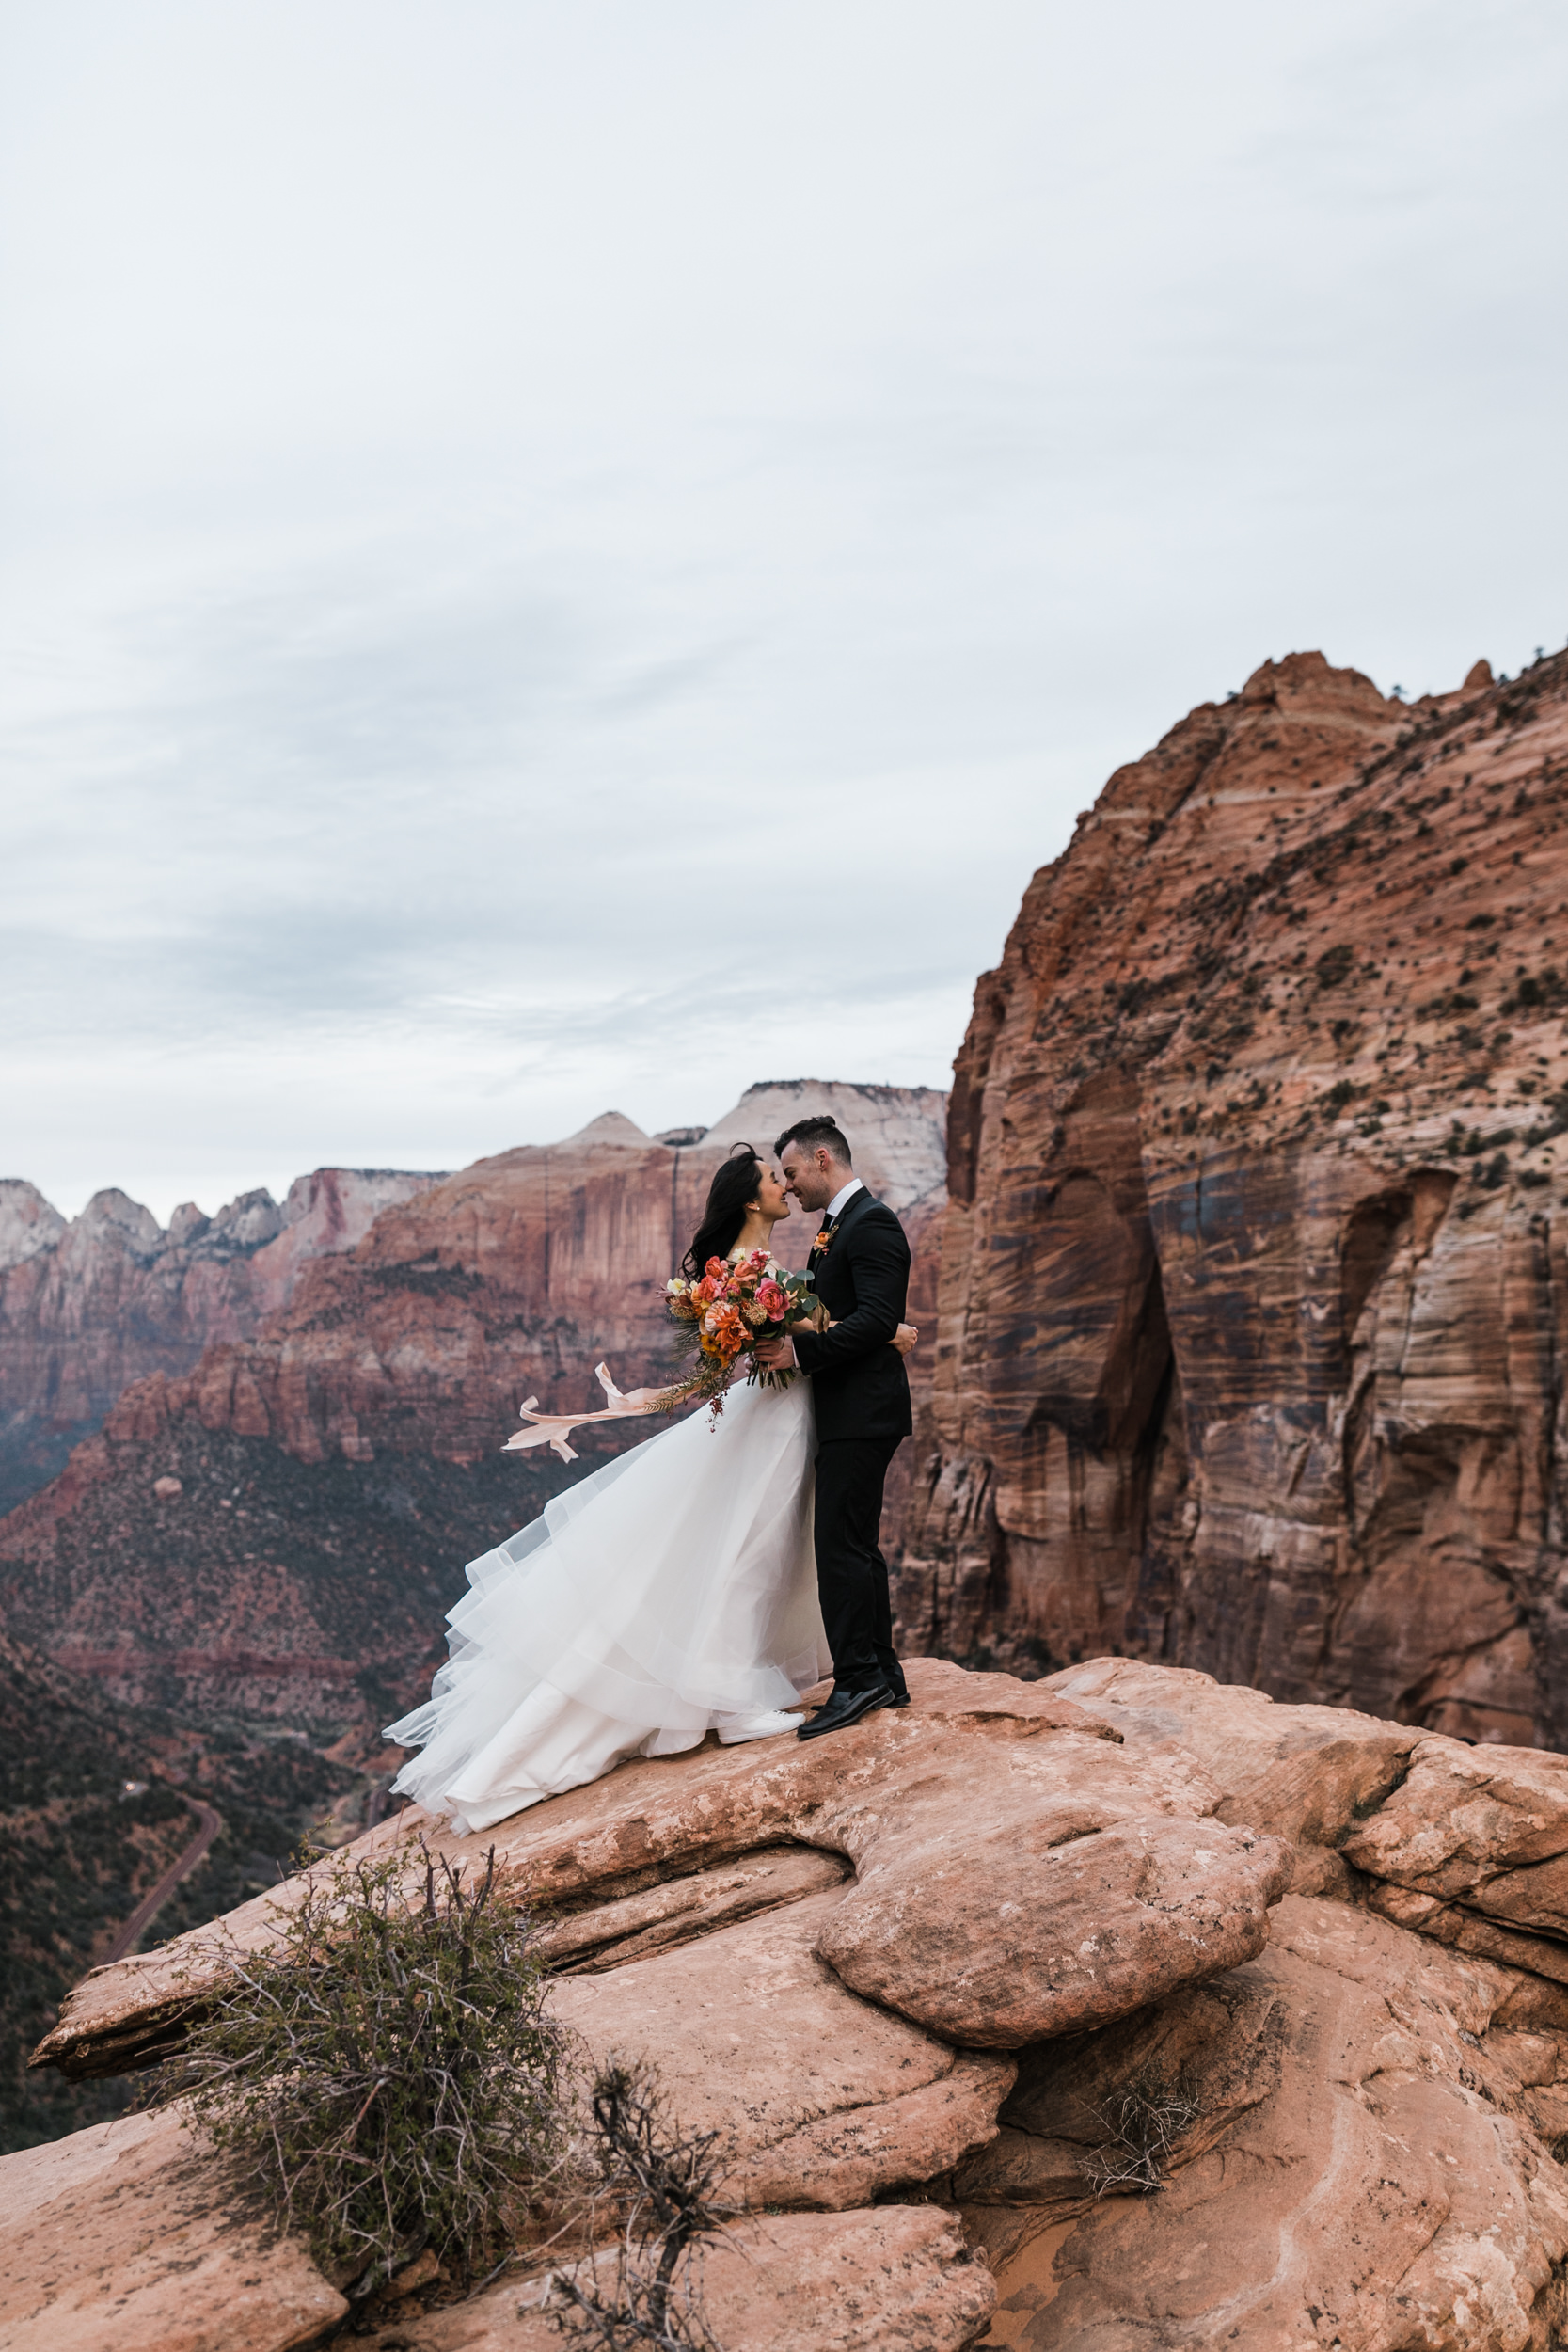 Wedding Photography in Zion National Park Southern Utah